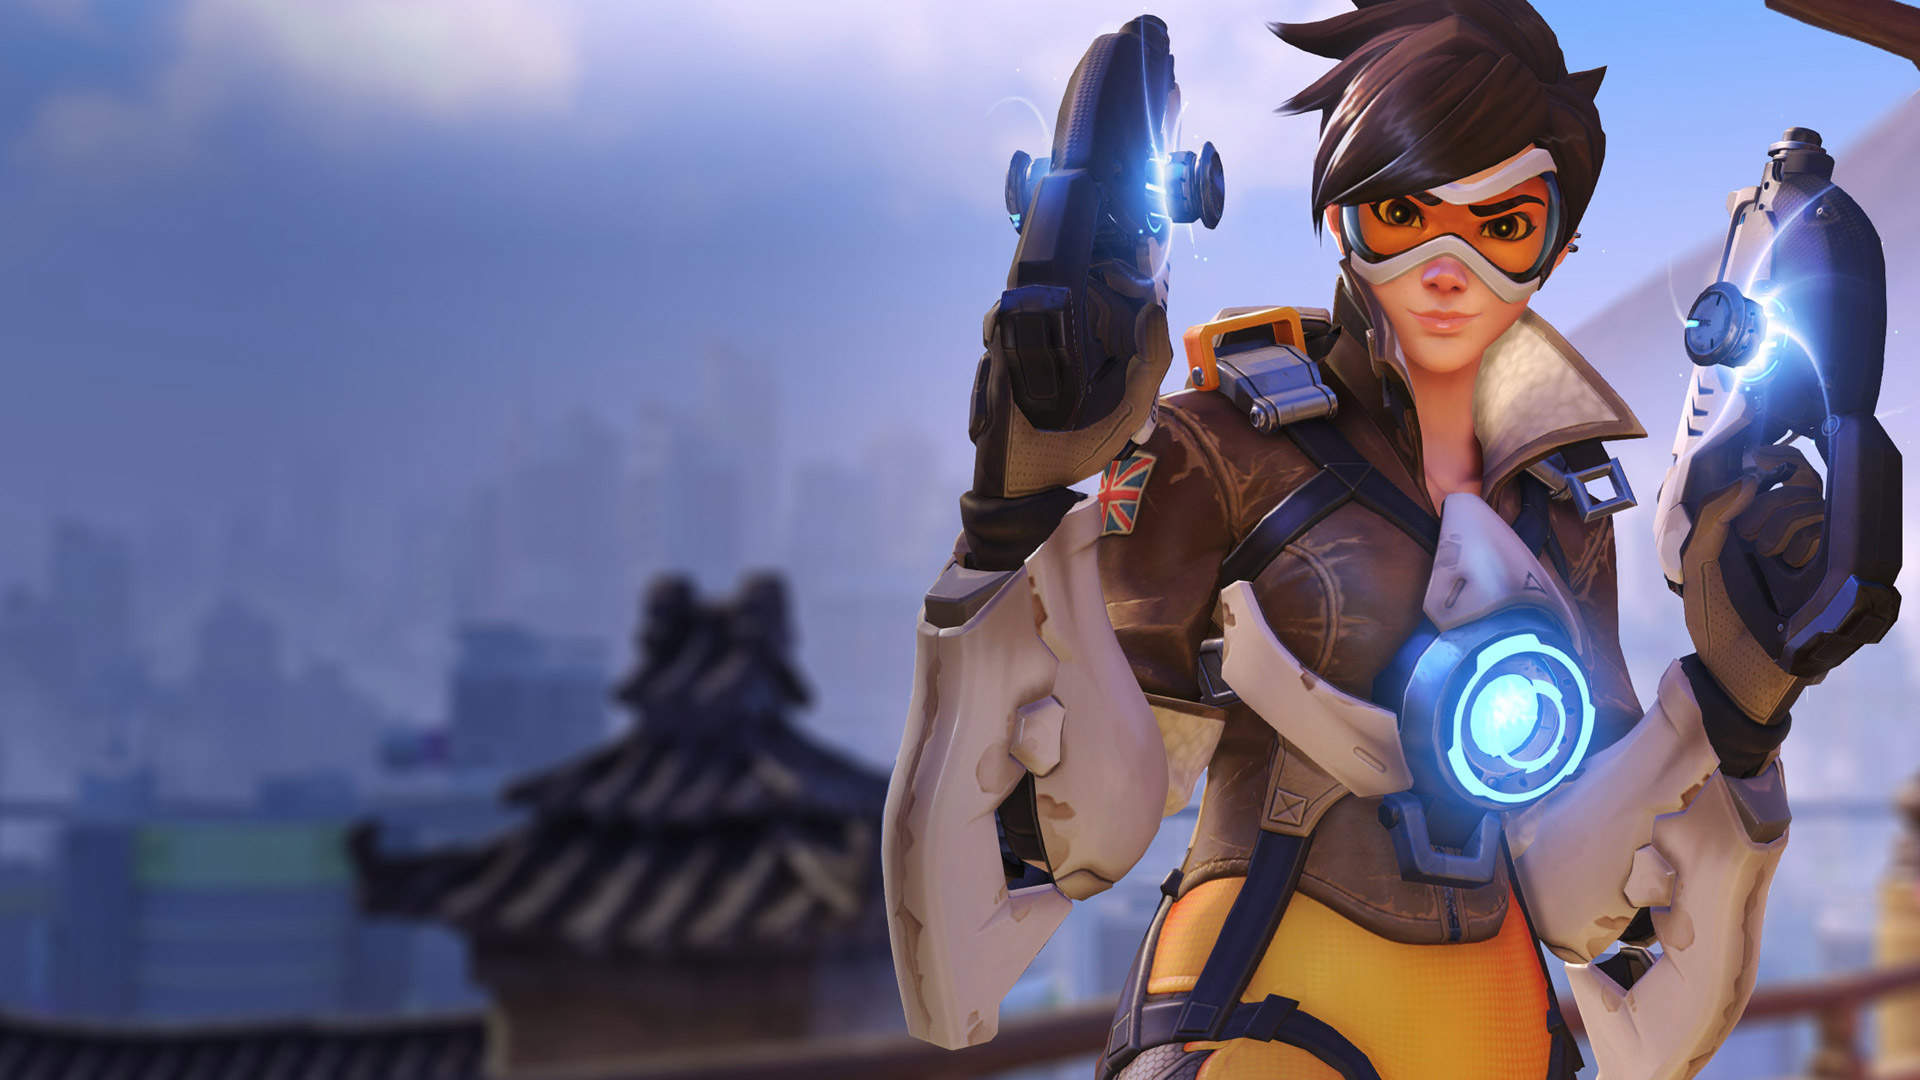 Overwatch will be getting 21:9 support